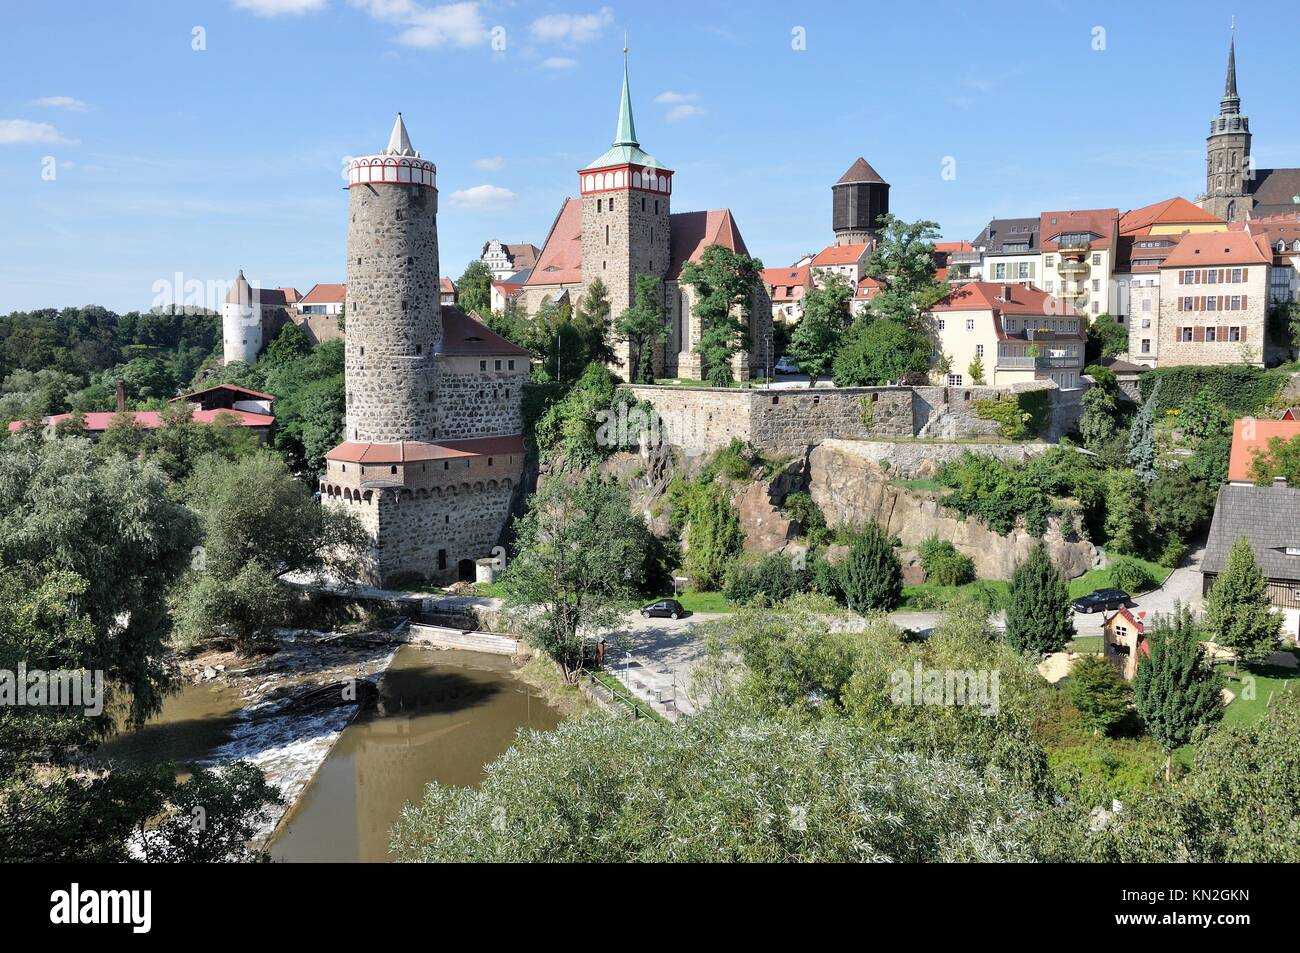 view of city center, bautzen, view of city center with ancient fortifications and city walls that surround houses, - Stock Image